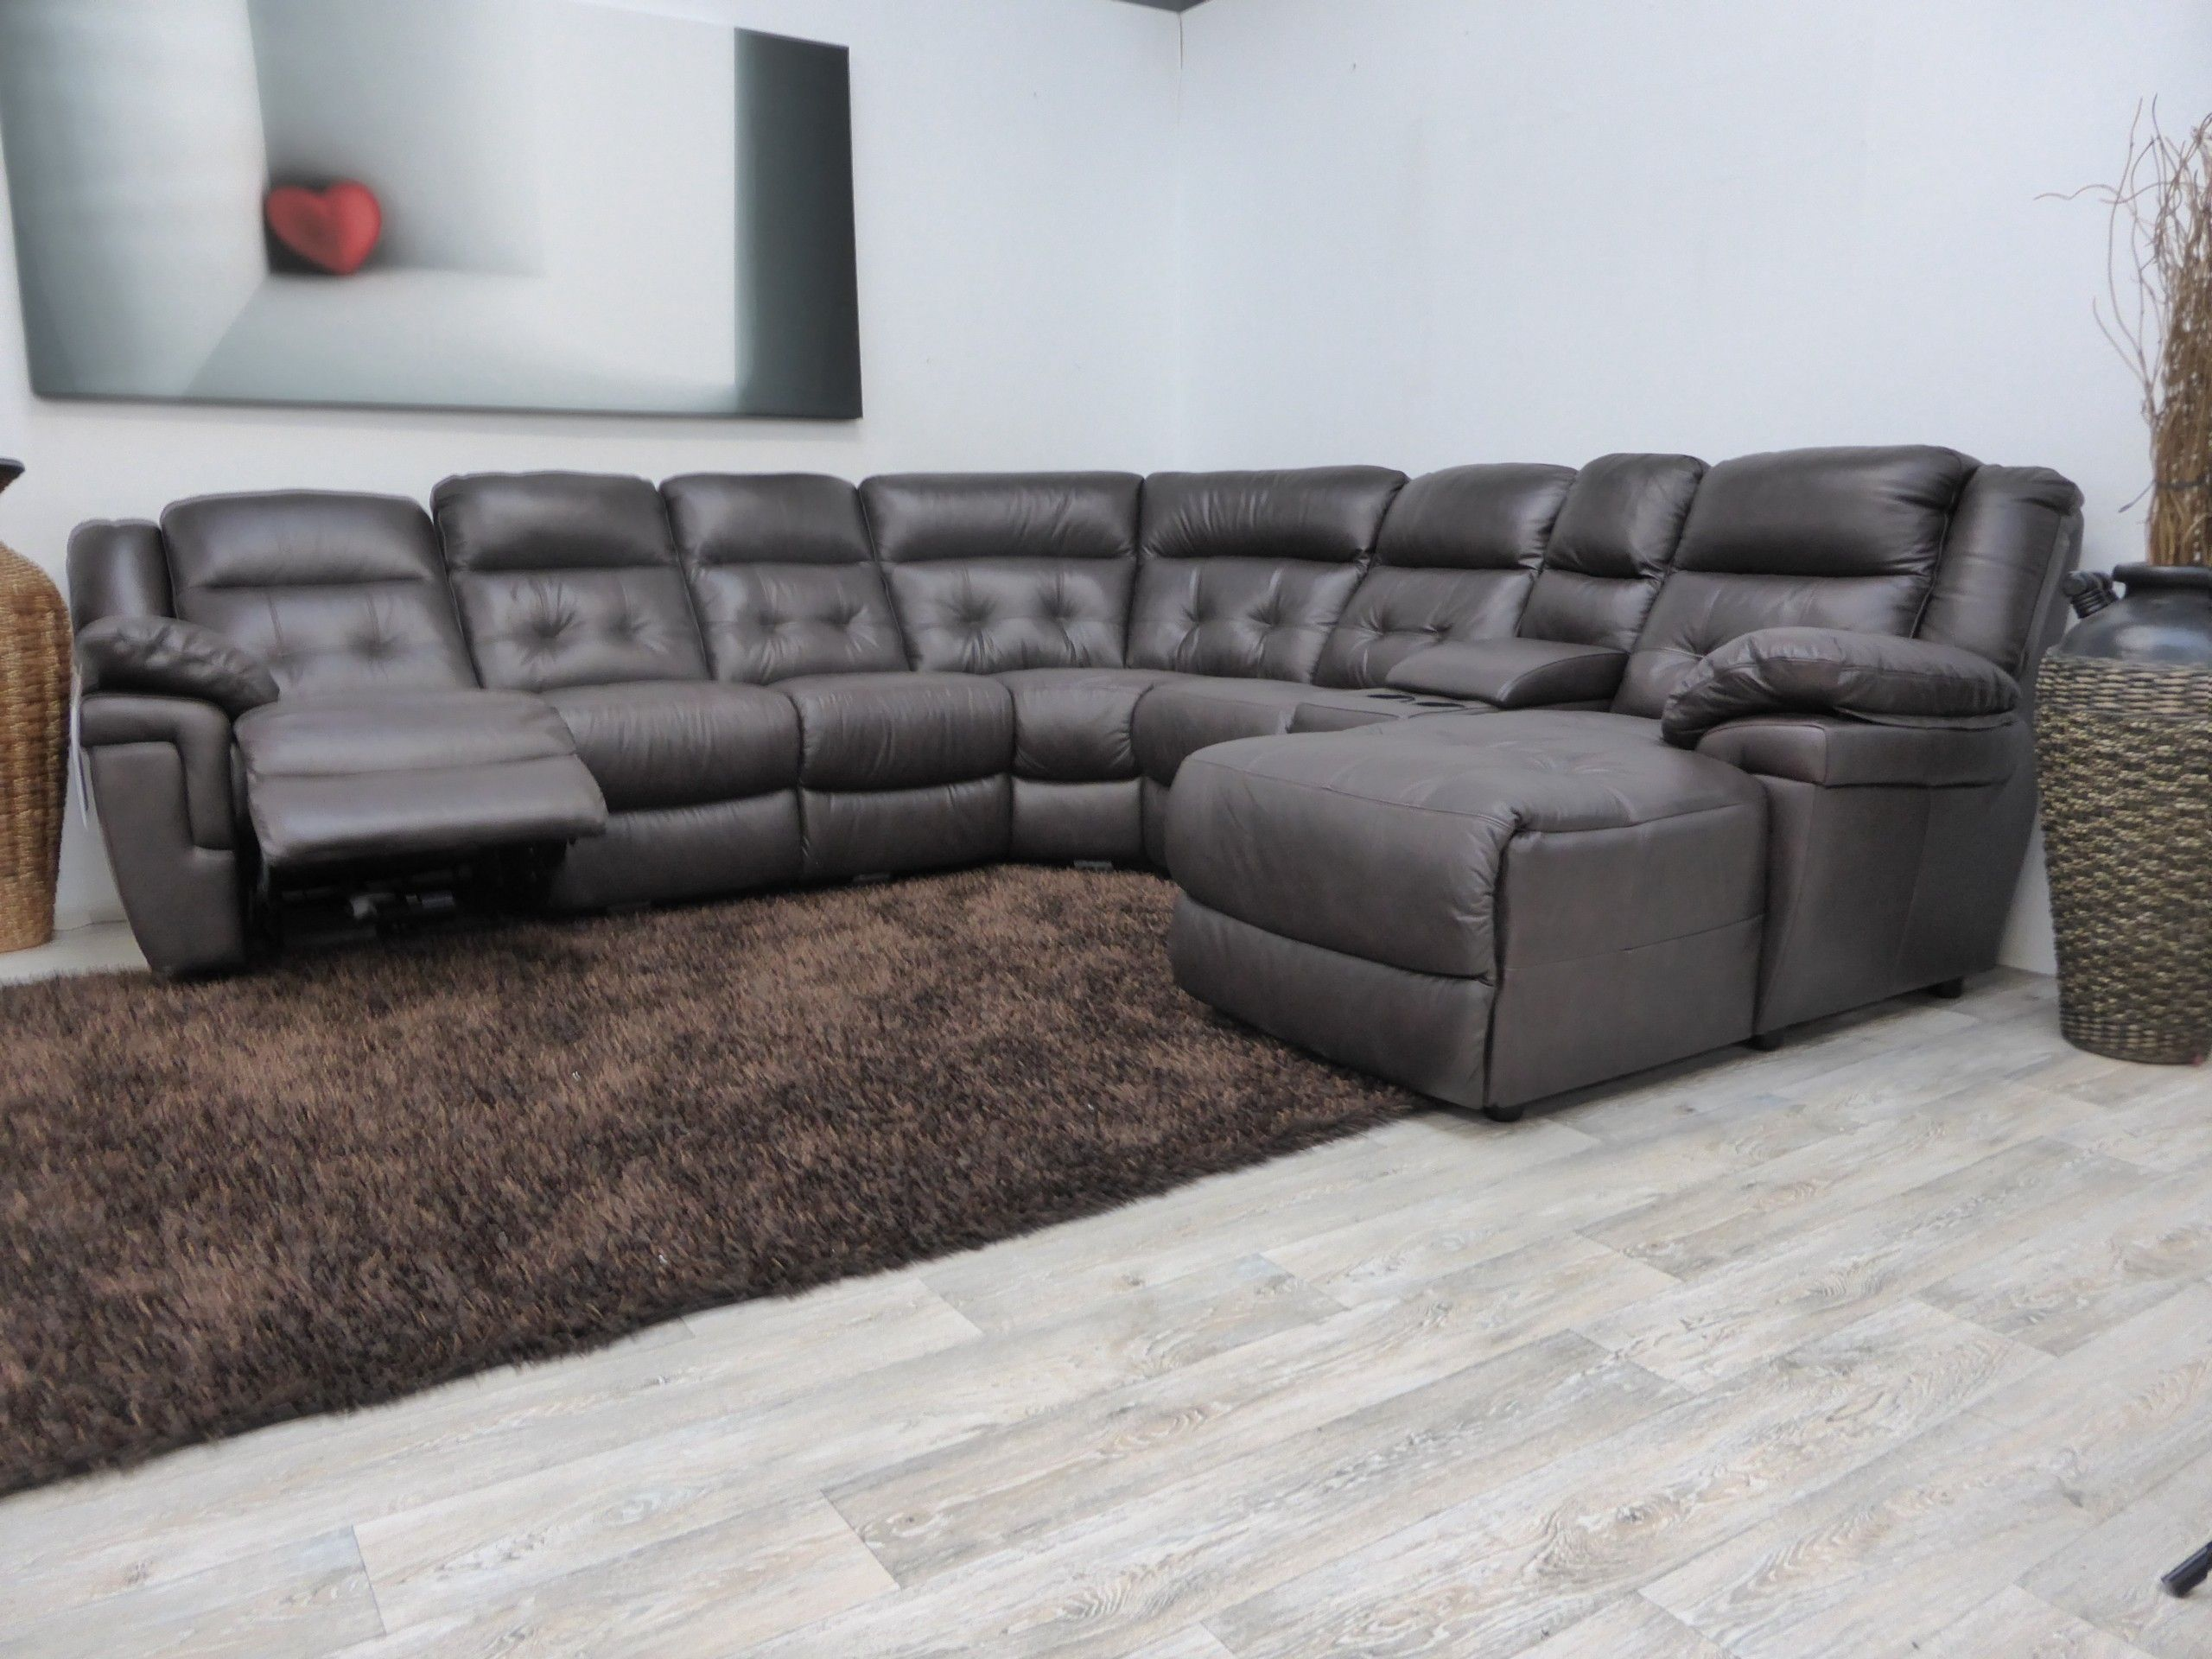 L Shaped Sofa Design With Black Upholstery Faux Leather